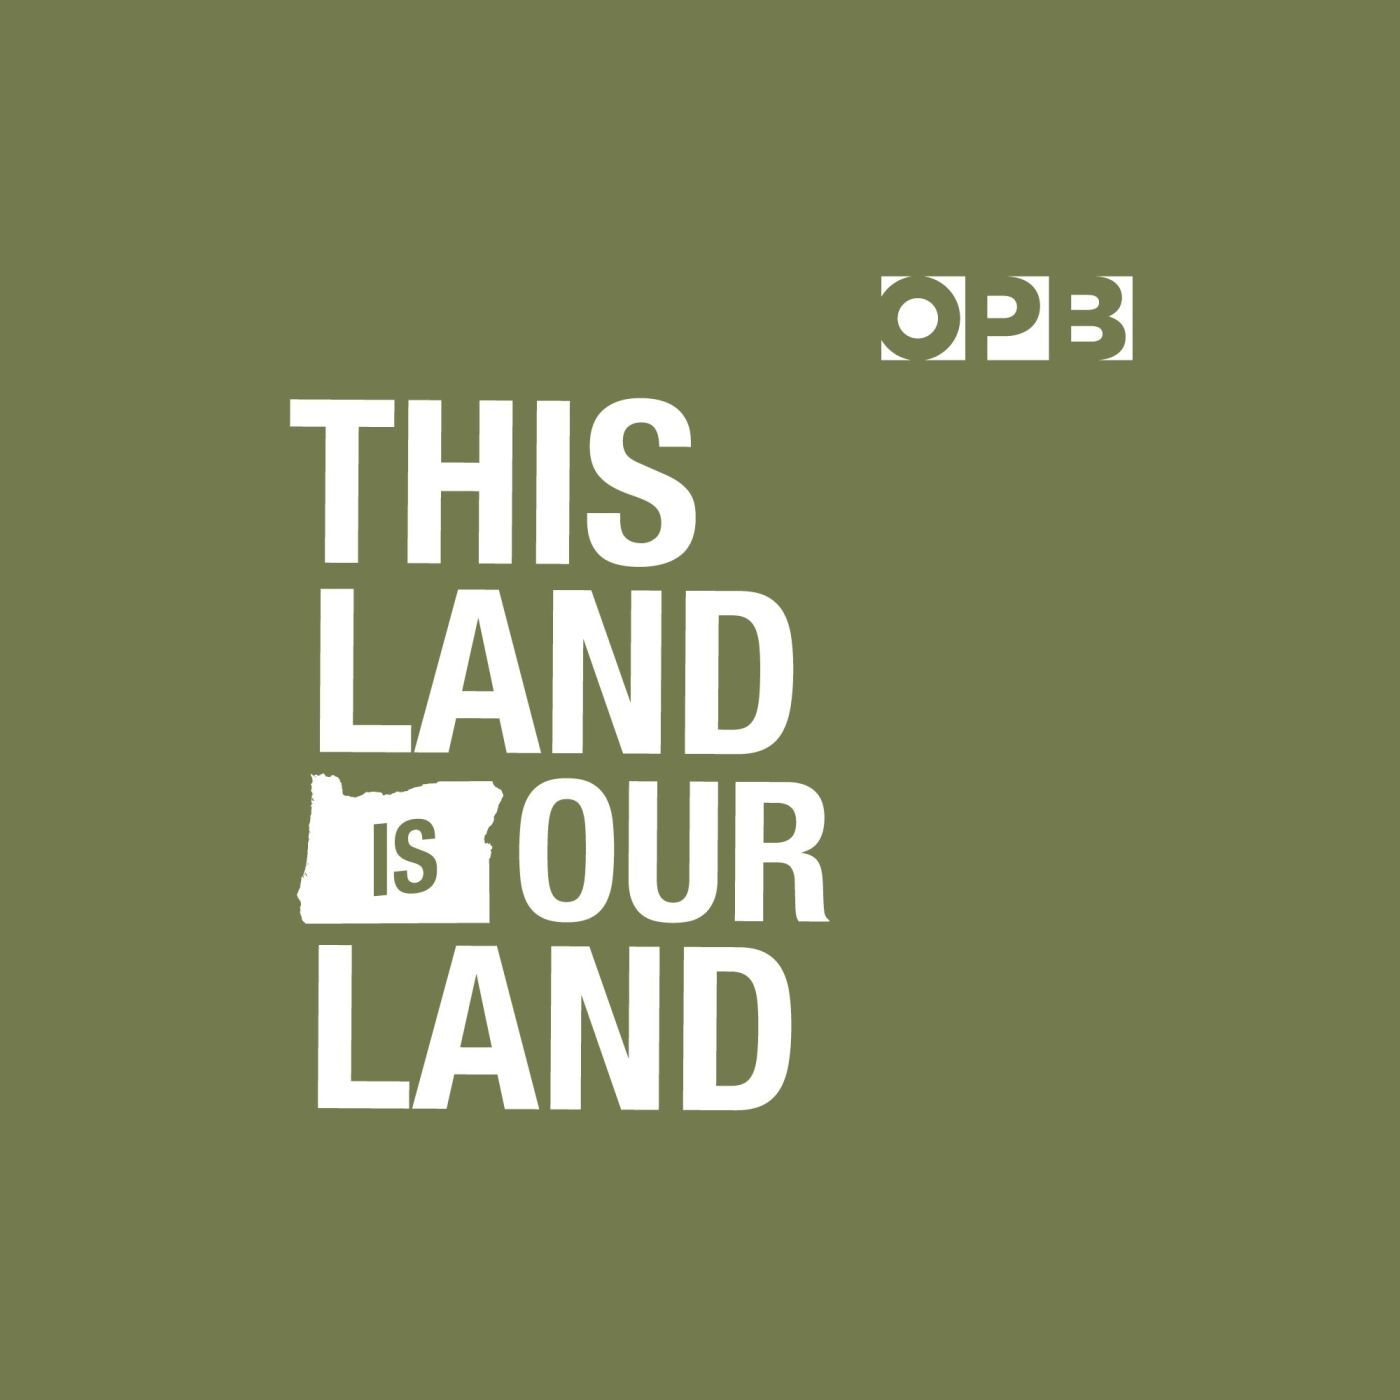 opb's this land is our land : npr